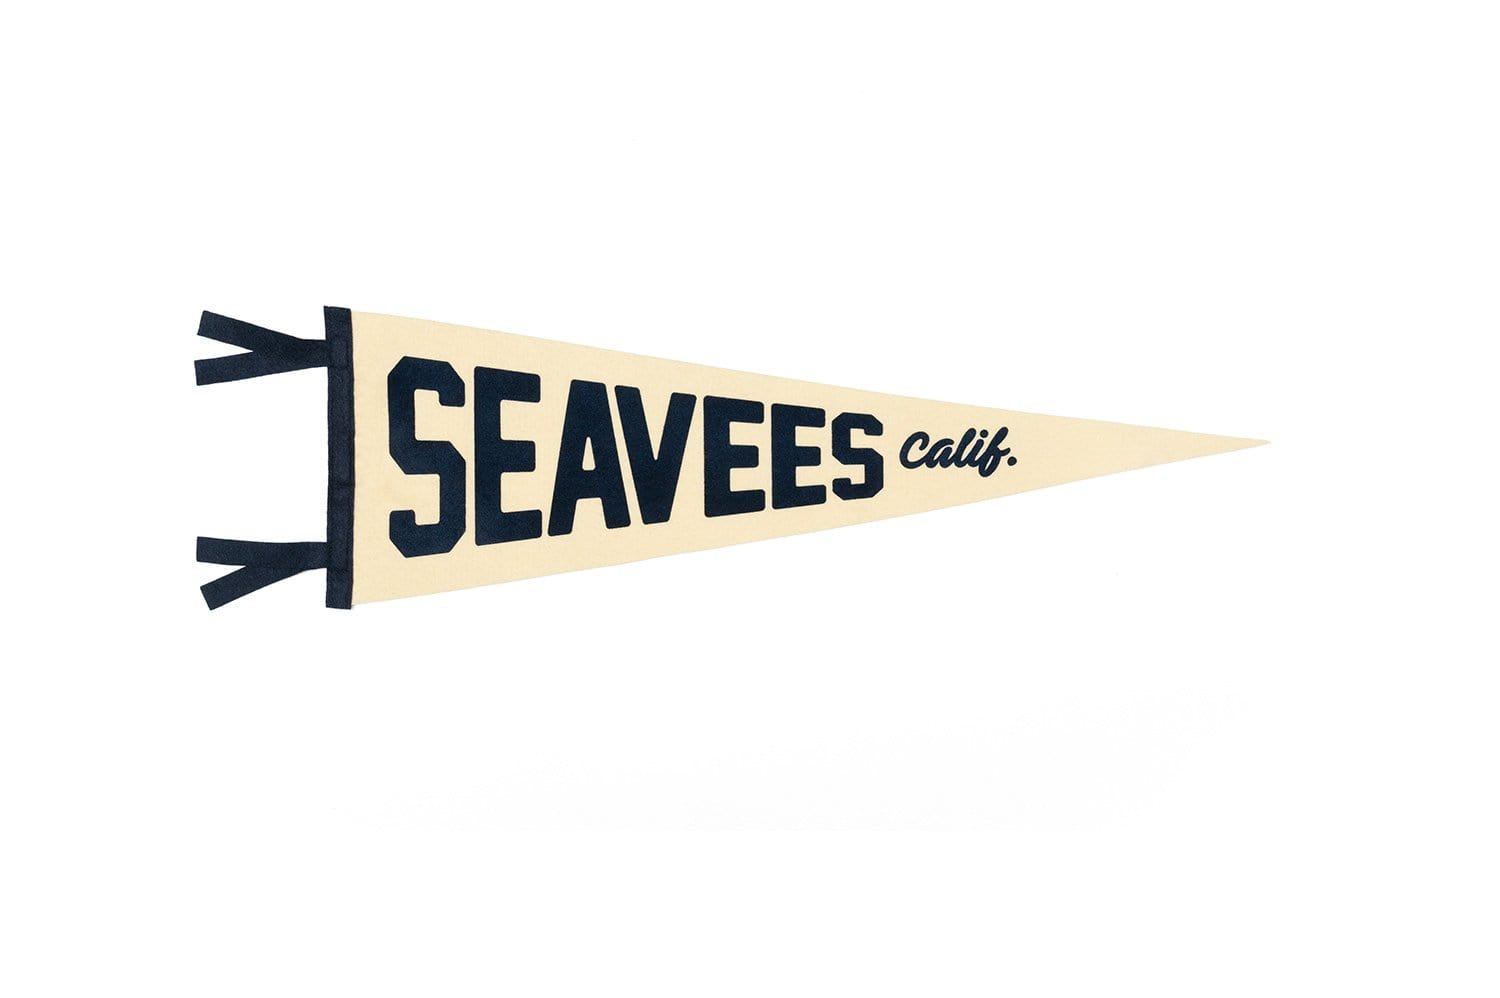 SeaVees Calif. Oxford Pennant - Navy